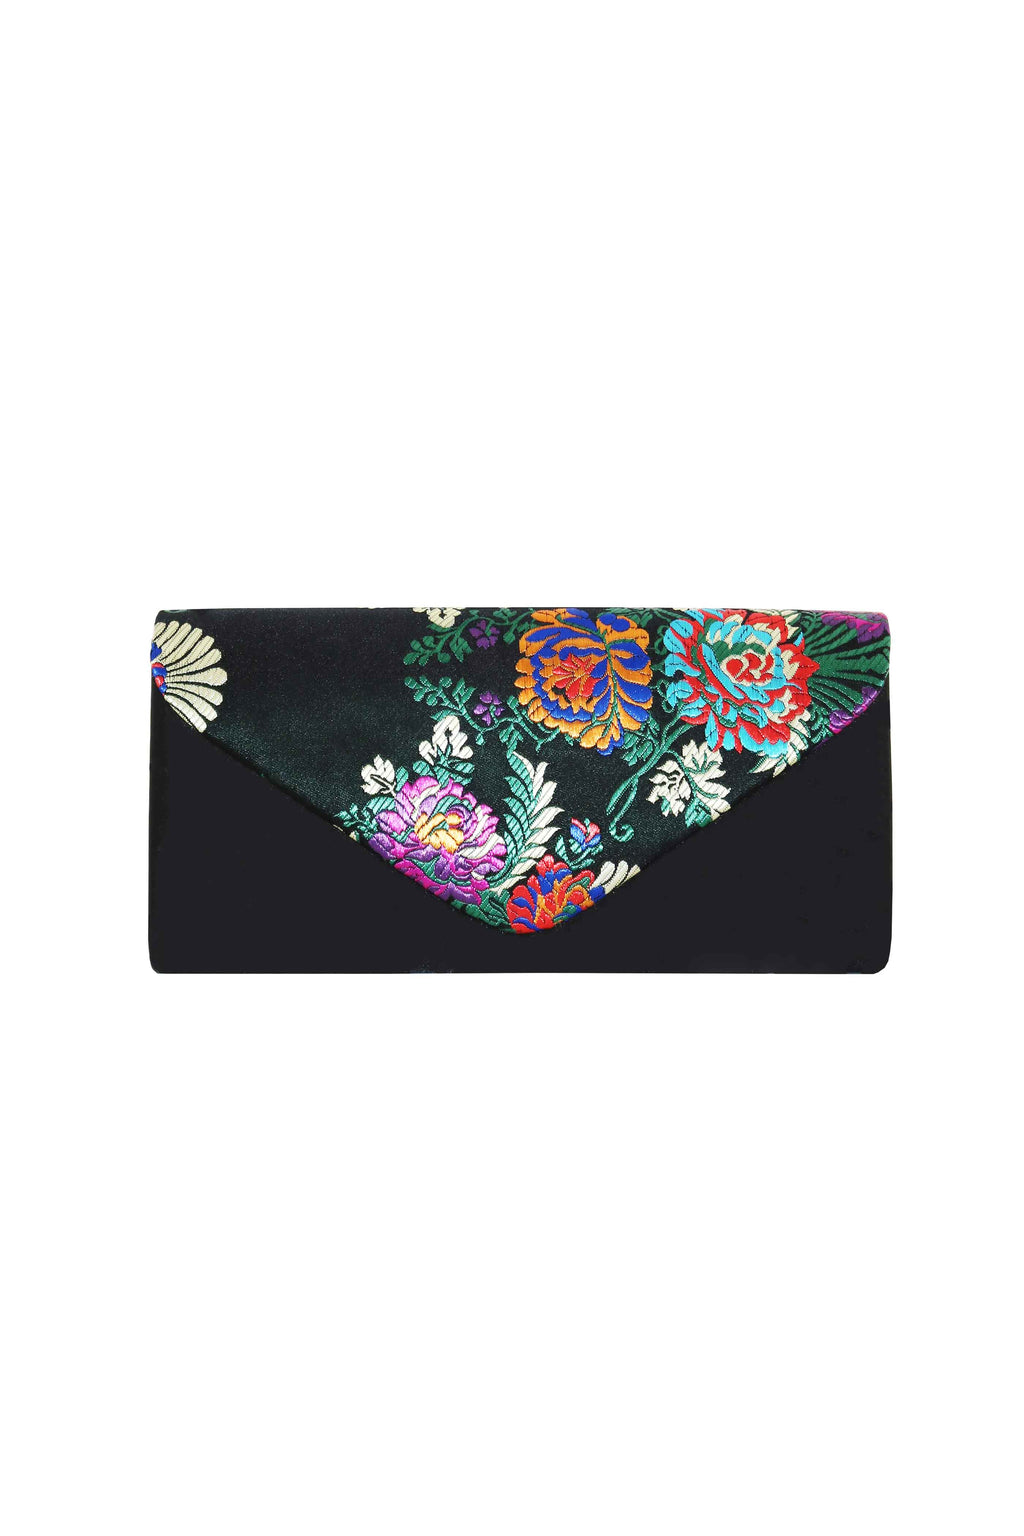 SCARLET BLACK CLUTCH BAG